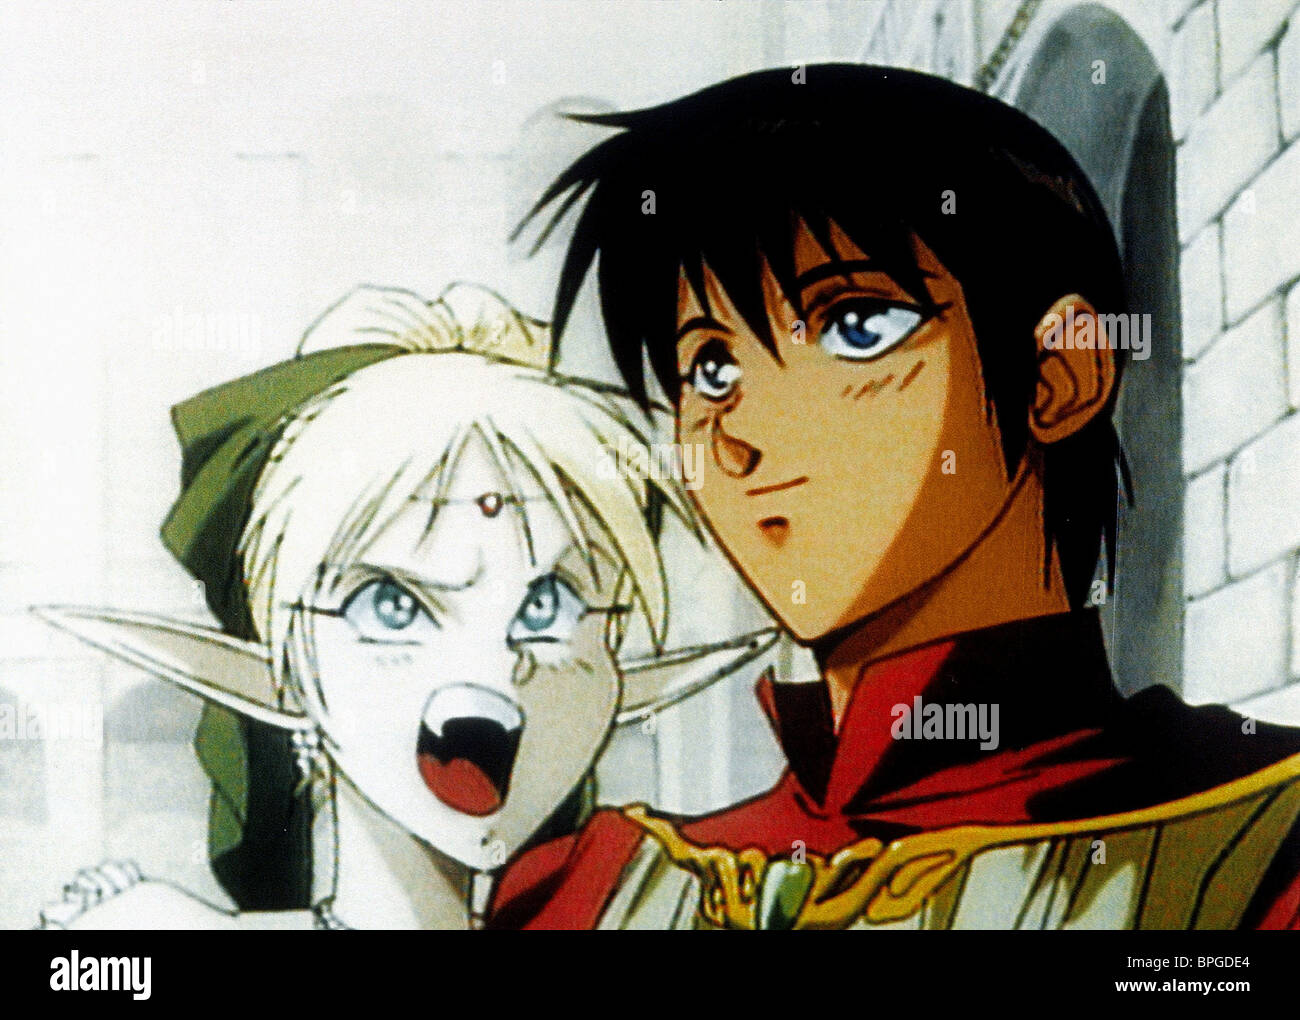 DEEDLIT & PARN RECORD OF LODOSS WARS: CHRONICLES OF THE HERIOC KNIGHT (1998) Stock Photo